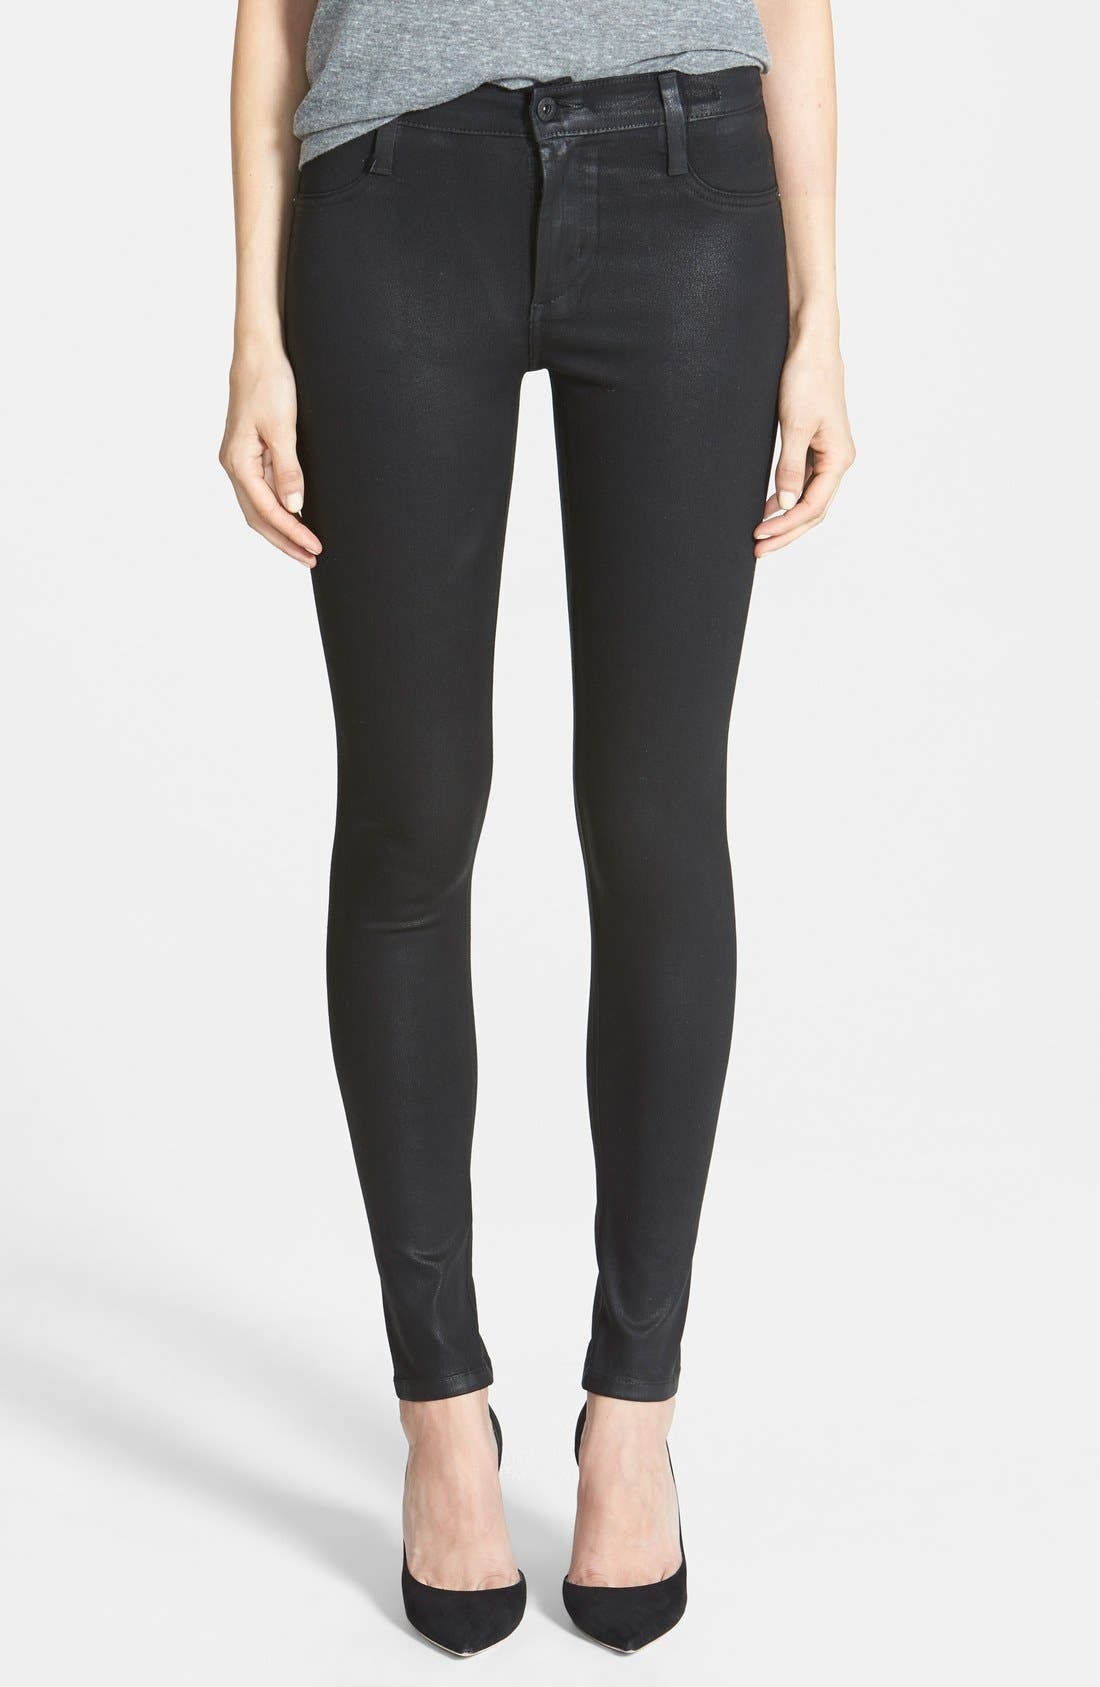 Main Image - James Jeans 'Twiggy' Seamless Yoga Leggings (Oil Slicked)